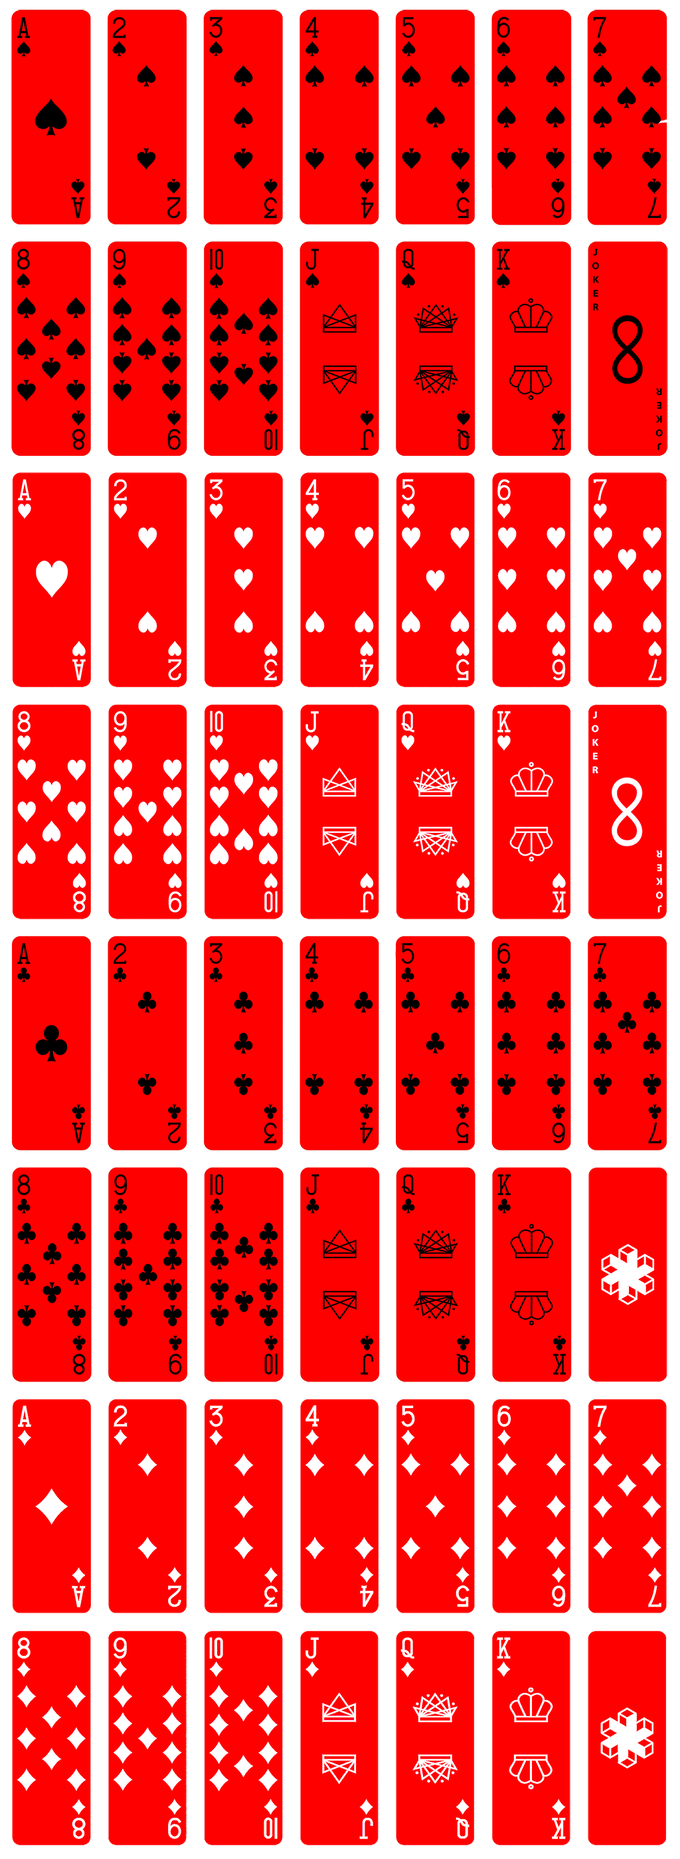 The Air Deck in red color